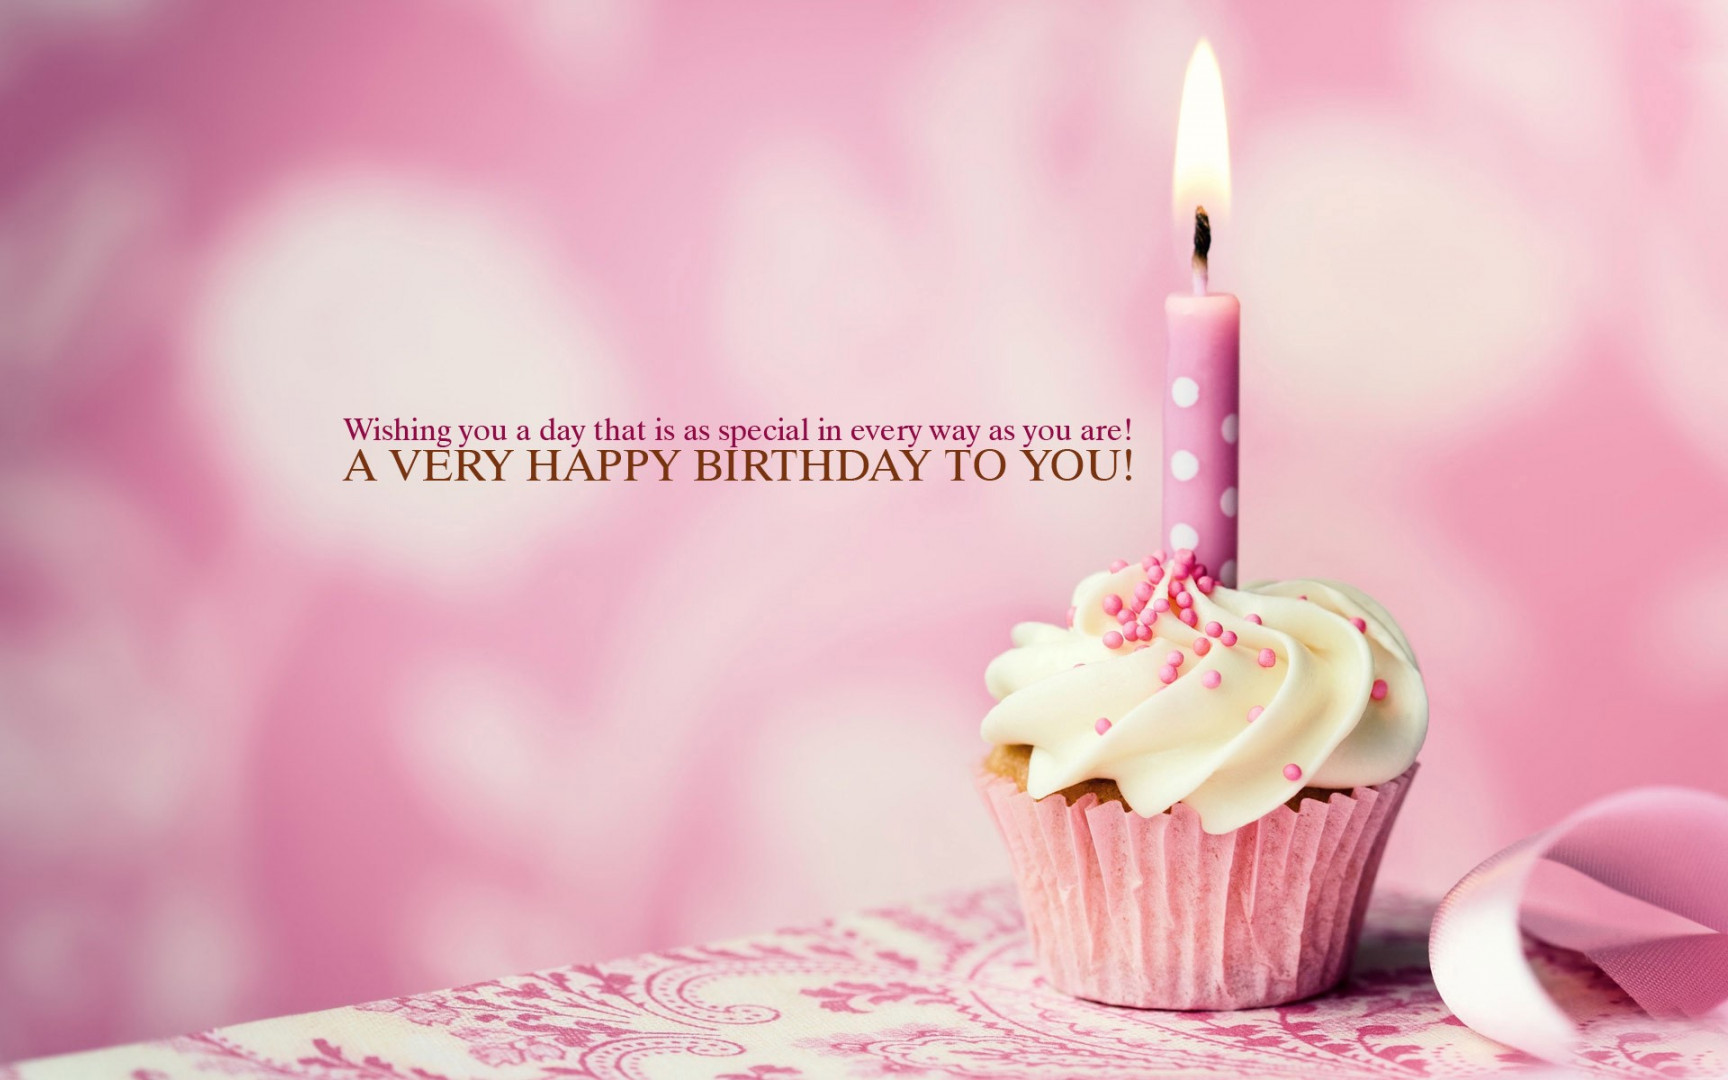 happy birthday quotes images download ; best-of-birthday-s-2681-tags-birthday-quotes-greetings-views-7165-of-happy-birthday-wishes-image-download